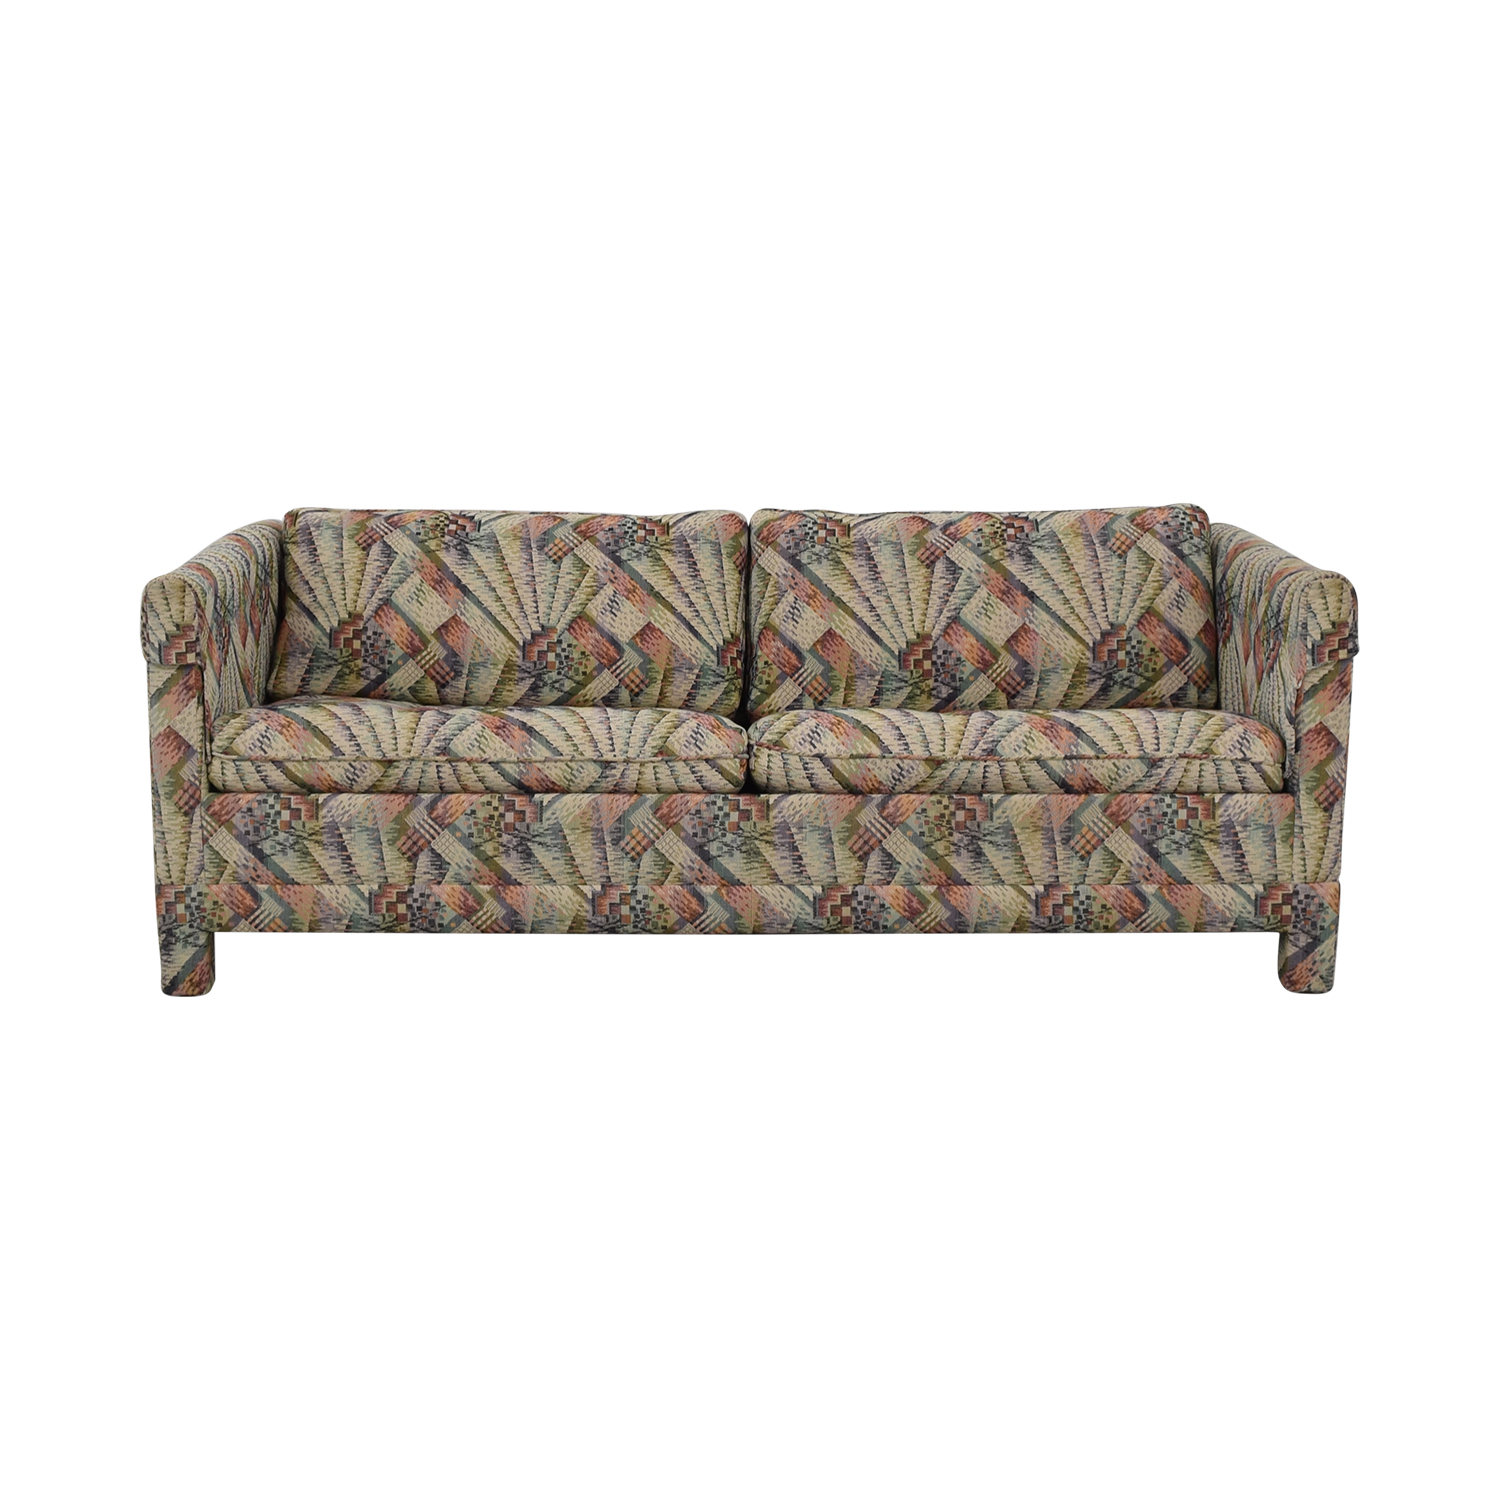 shop Mittman Patterned Queen Sleeper Sofa Lewis Mittman